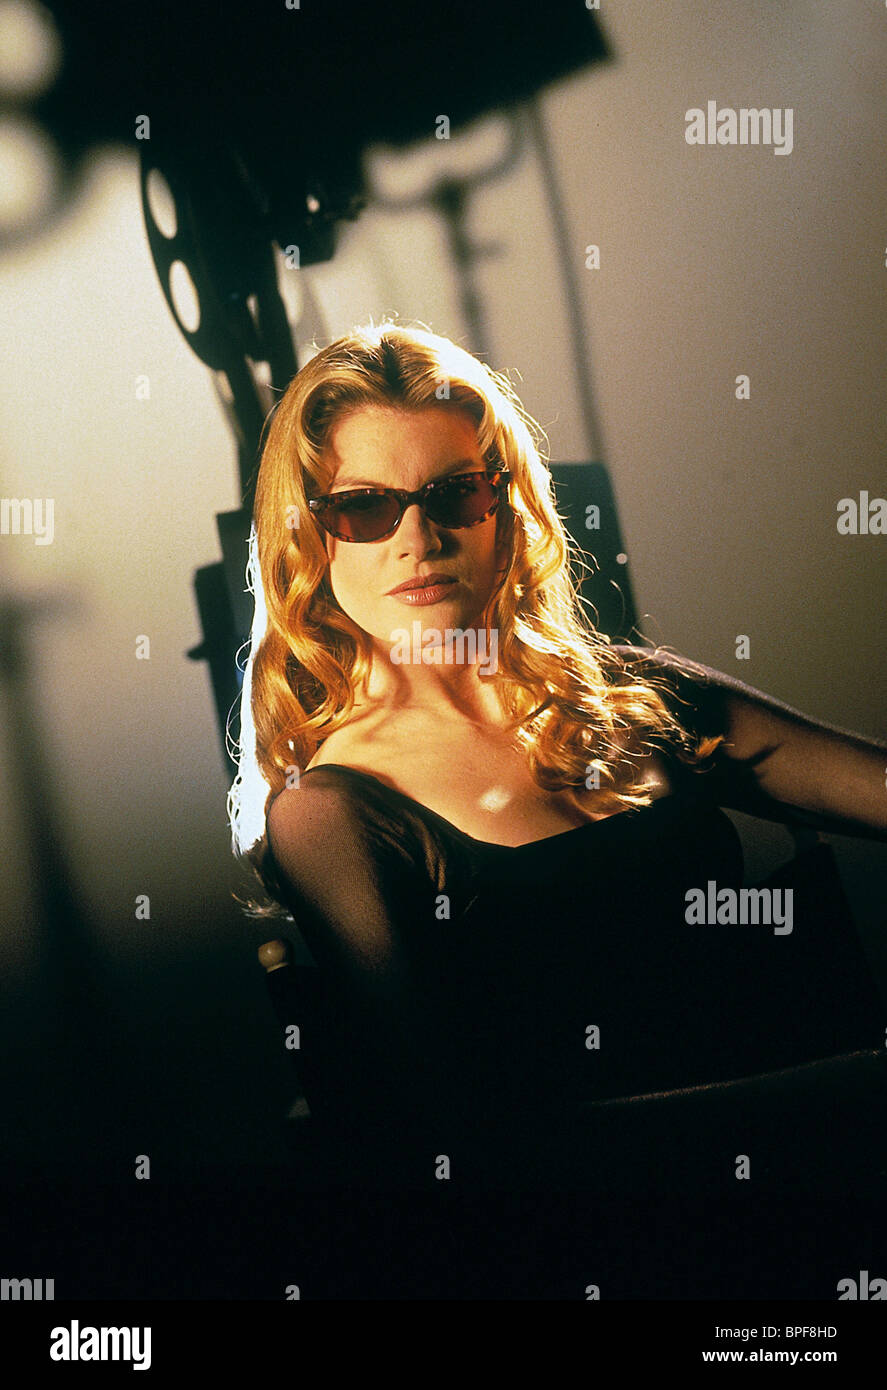 RENE RUSSO GET SHORTY (1995) - Stock Image